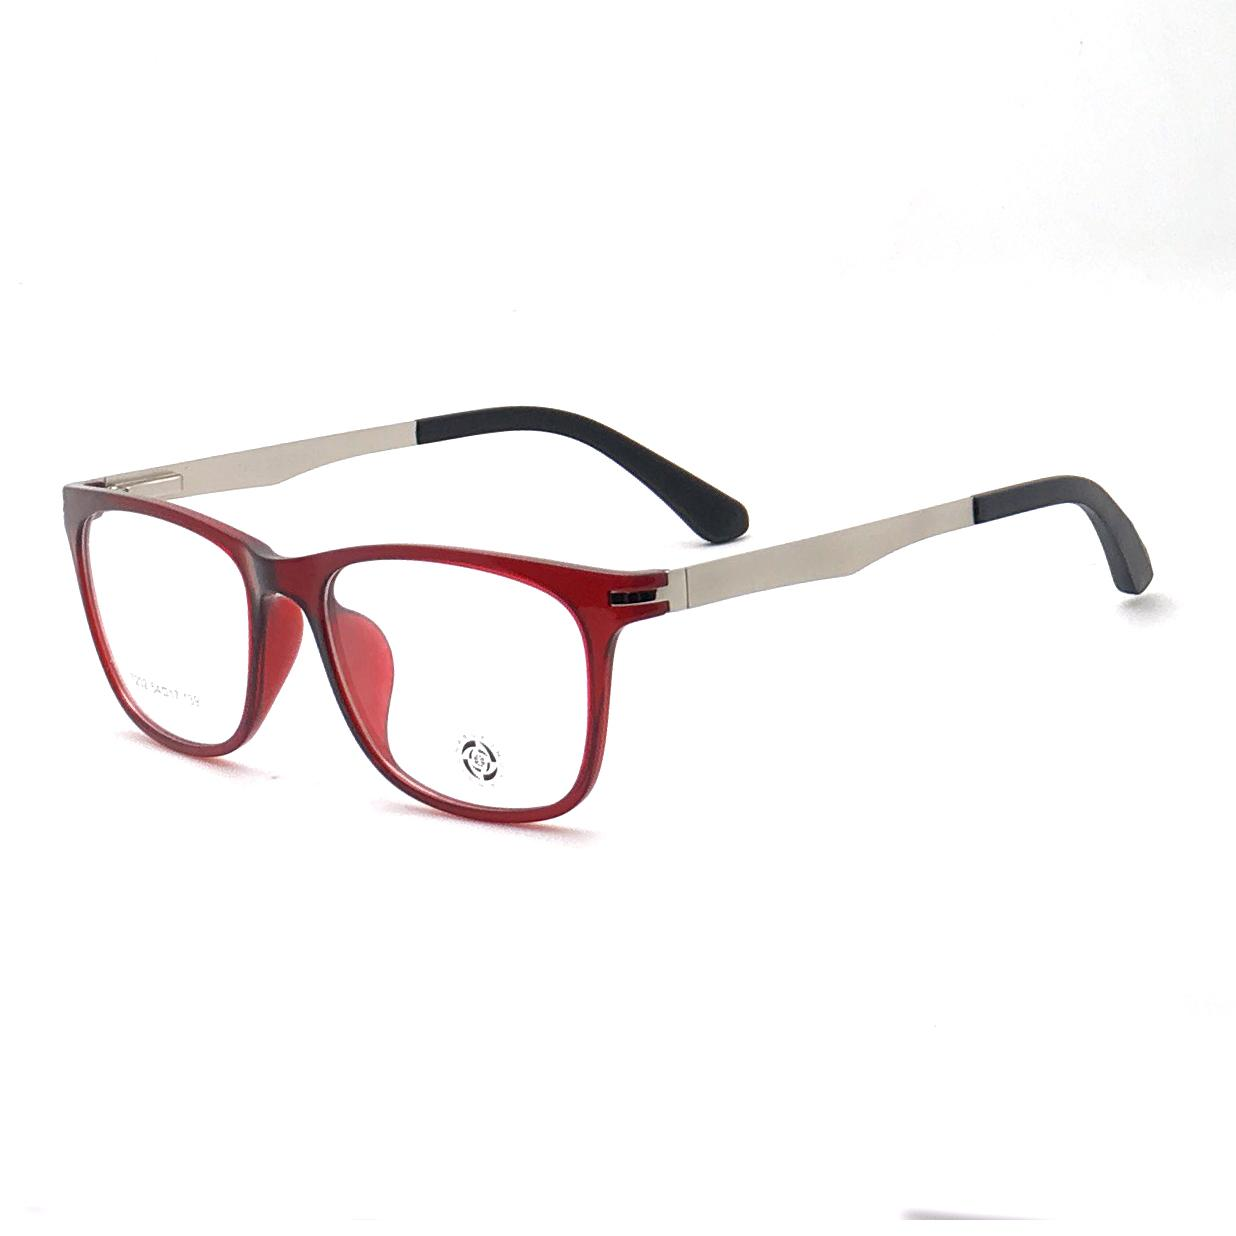 No.7202eyeglasses Frame Men Frame 2016 Latest Fashion ...